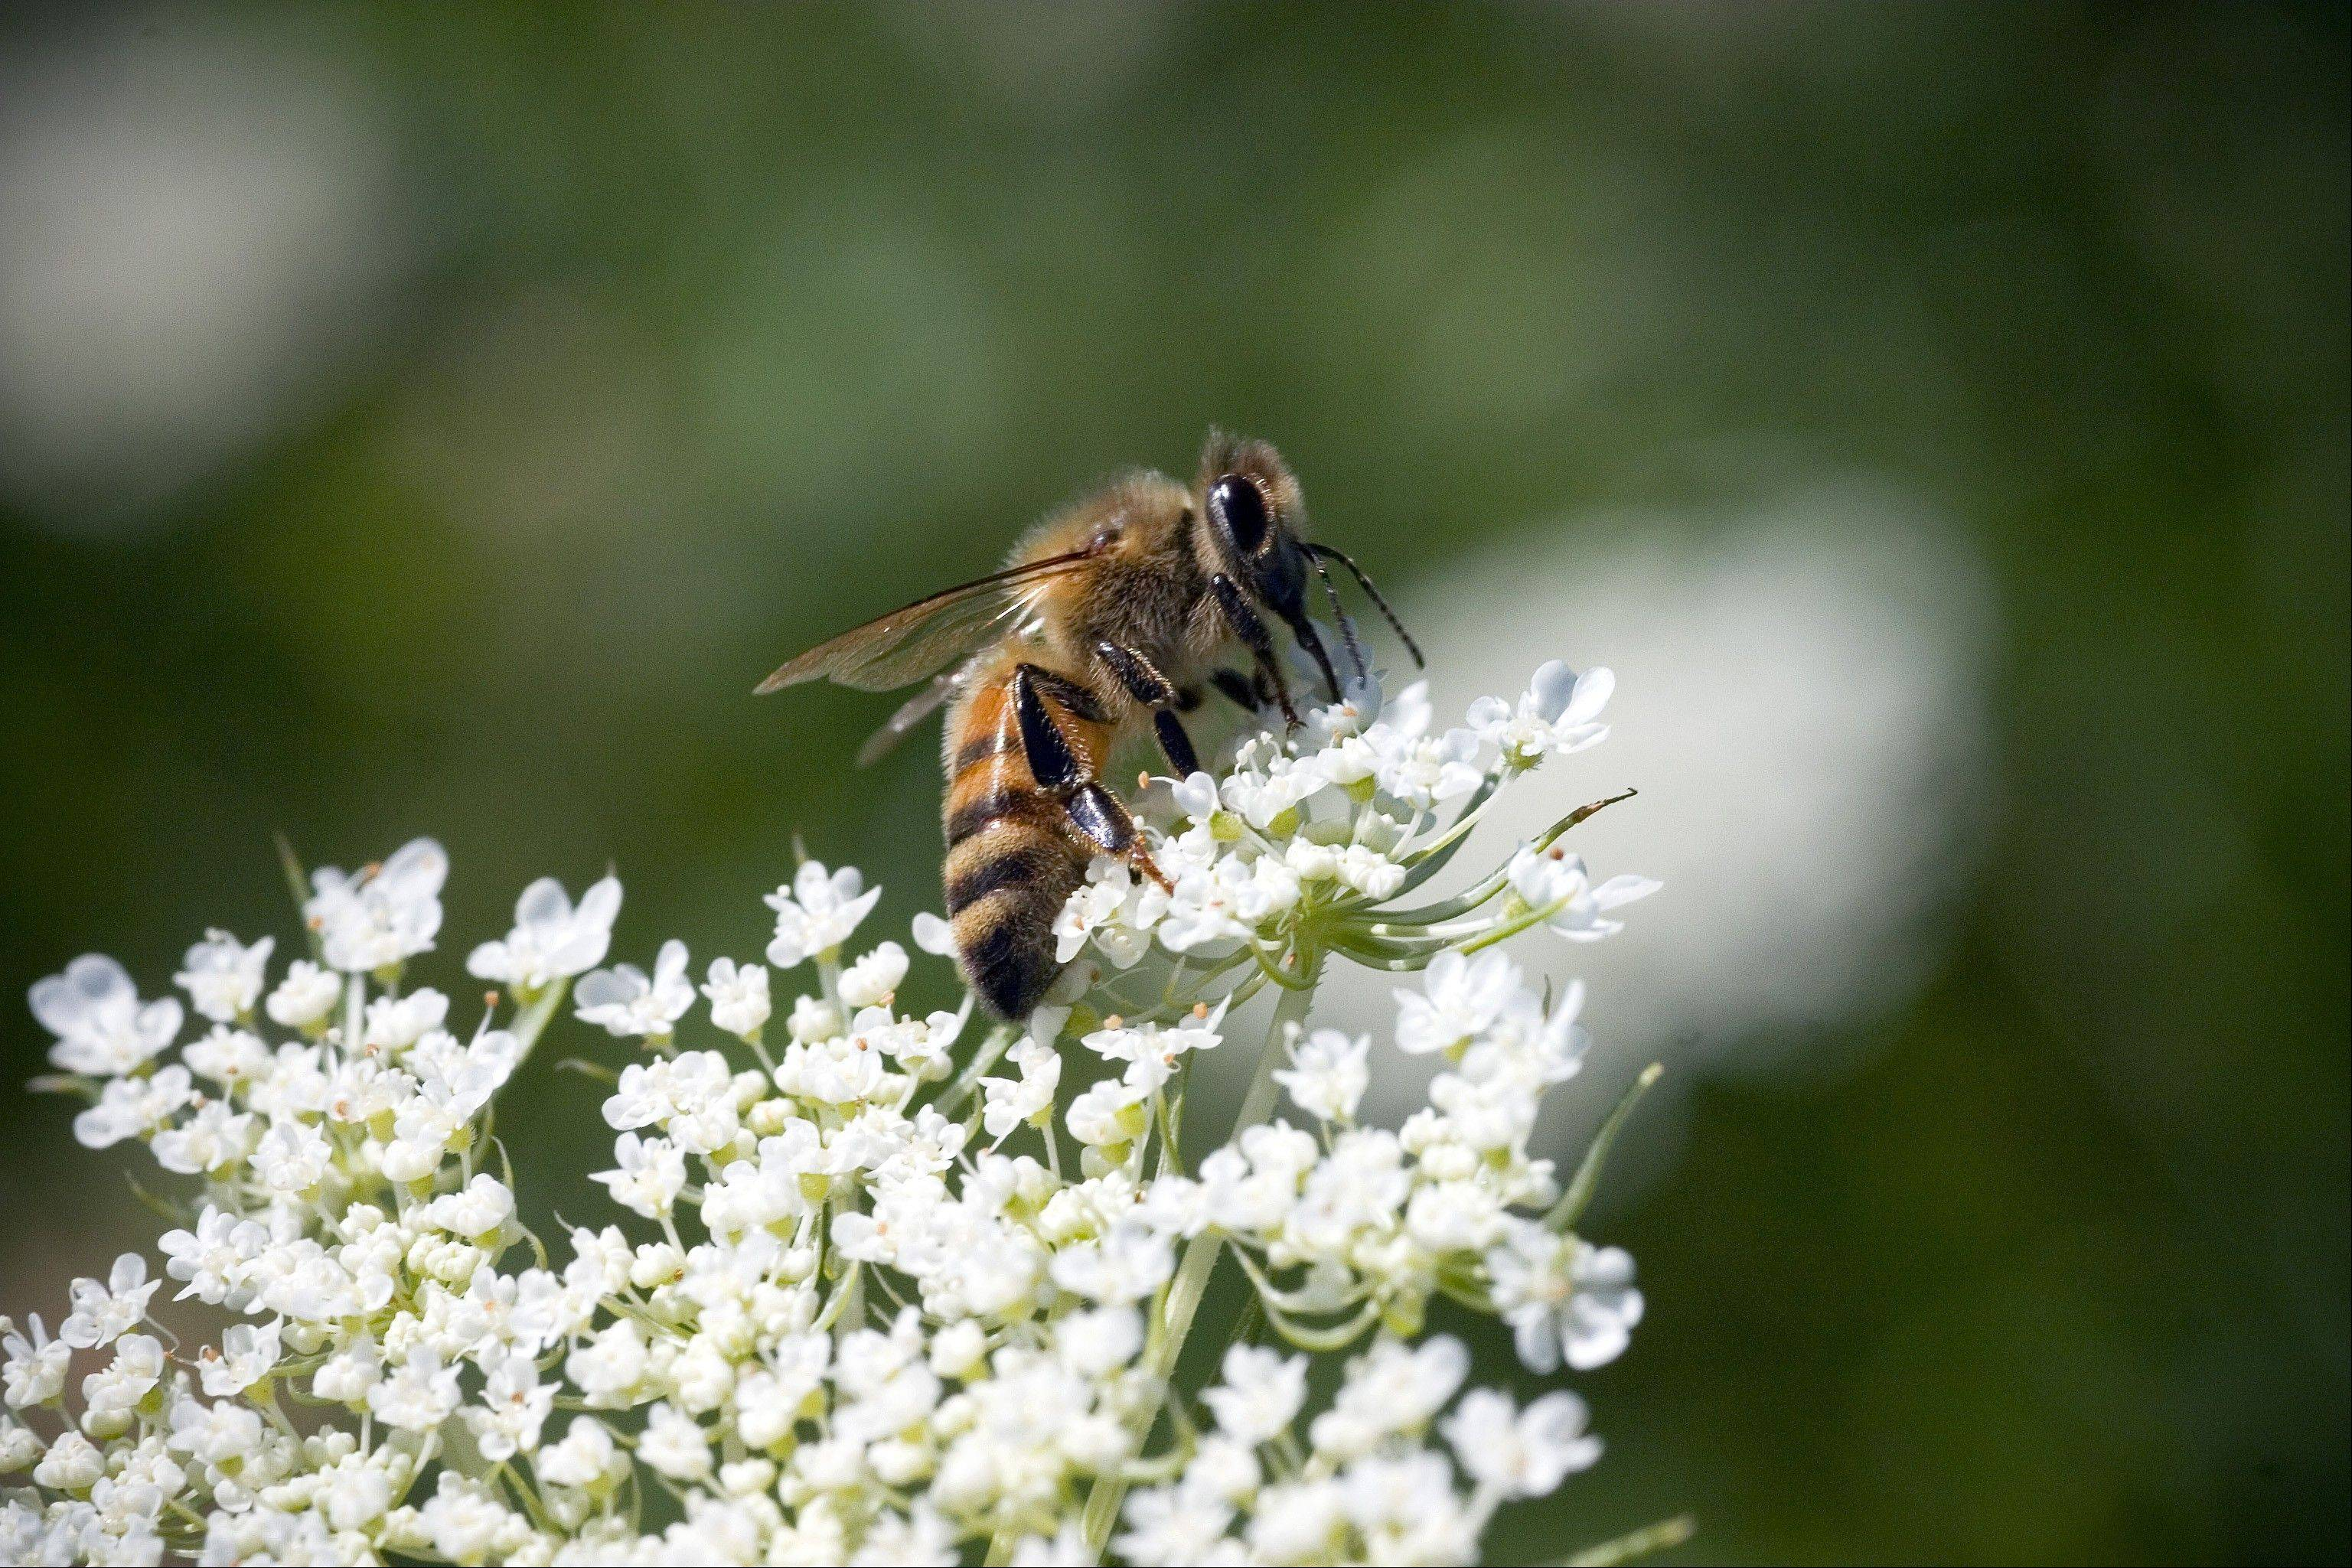 Kline Creek Farm to celebrate National Honey Bee Day for the first time